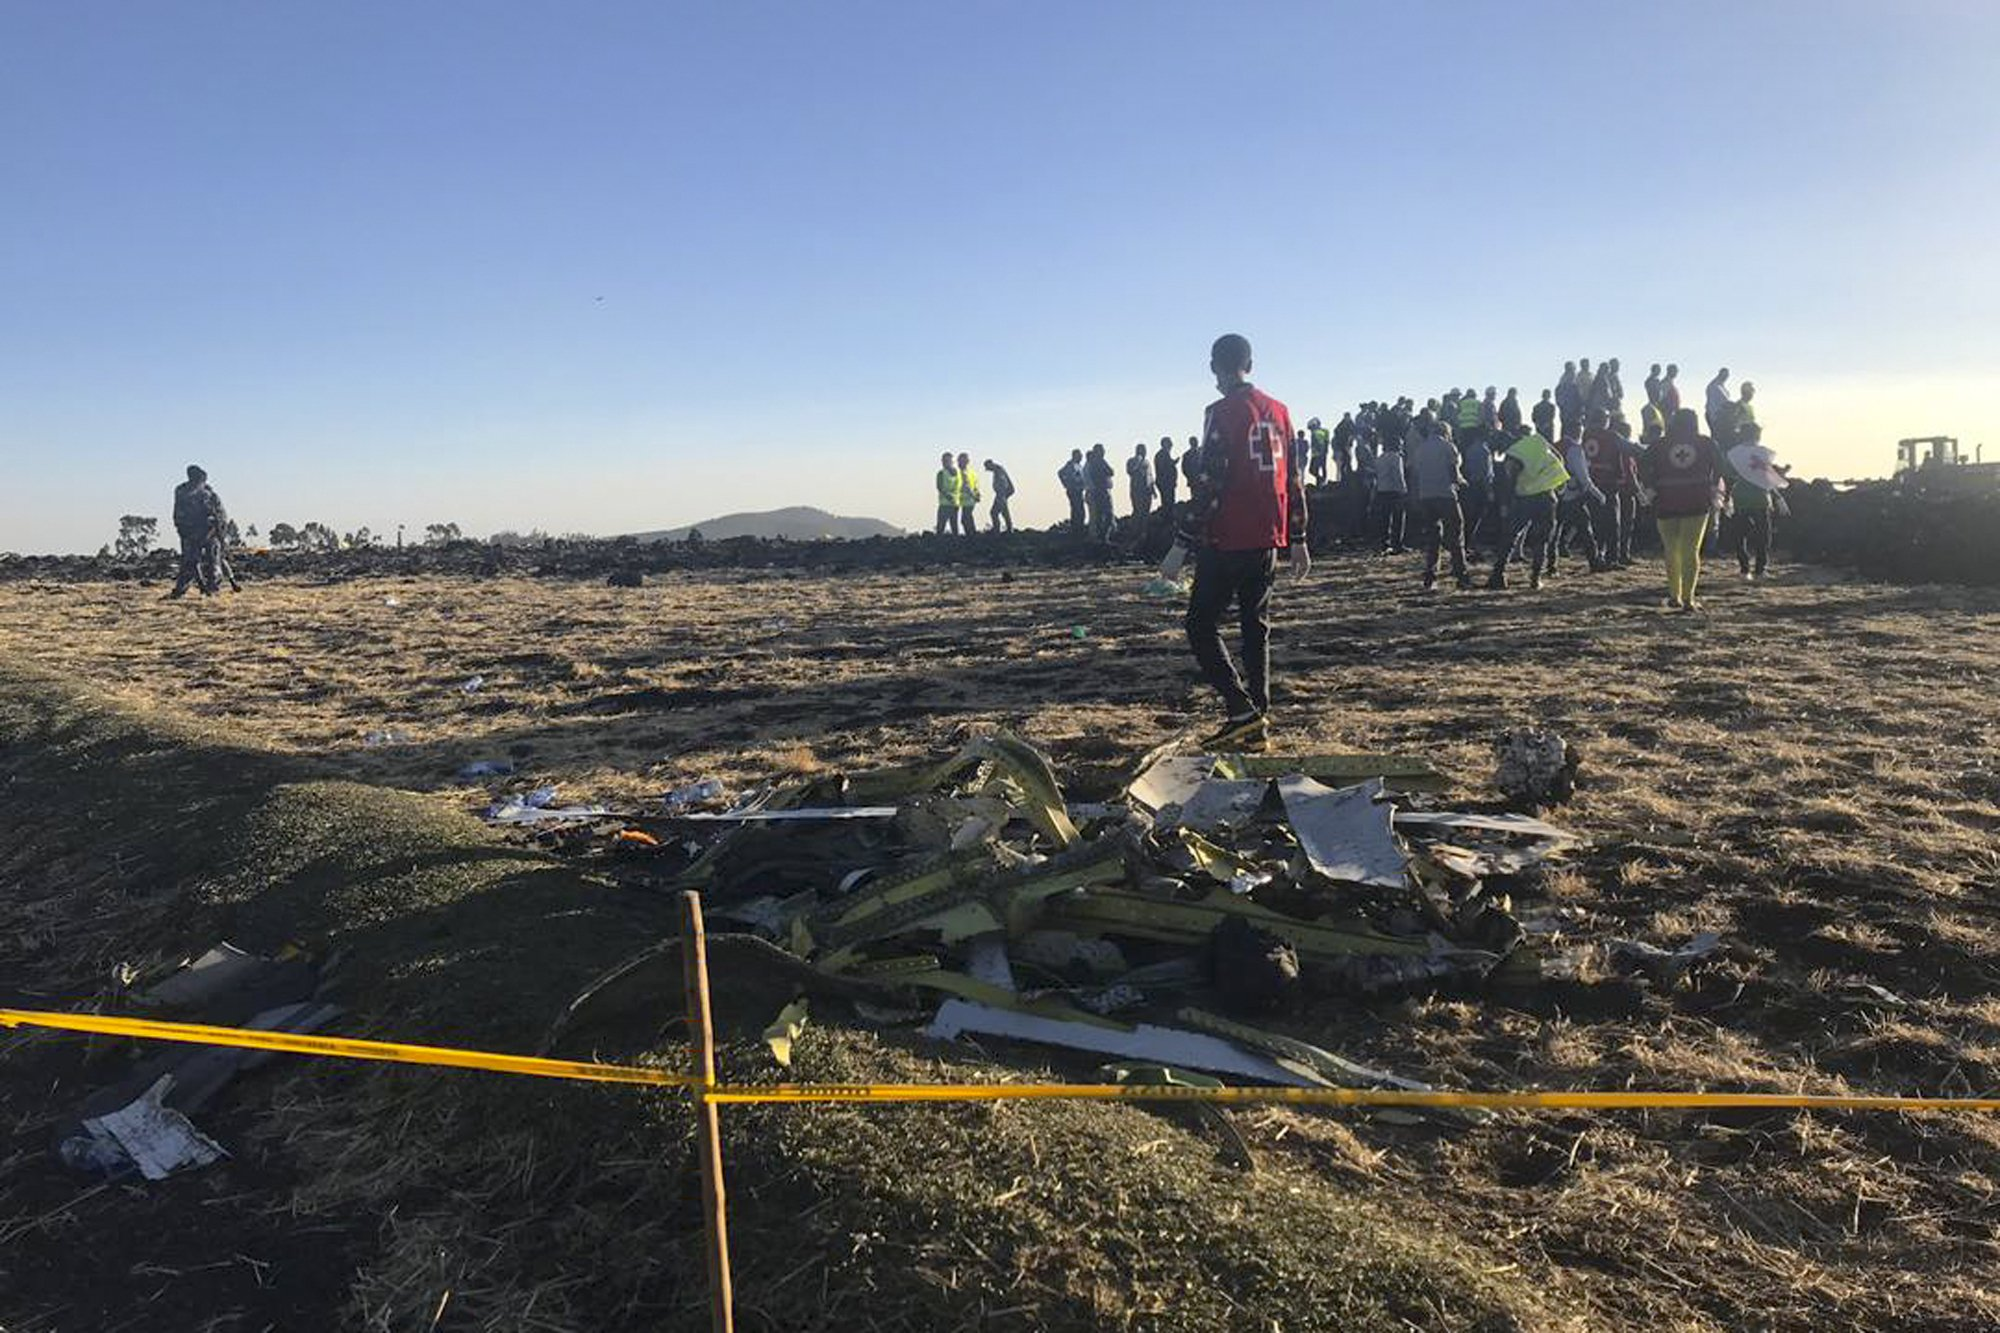 Rescuers search at the scene of an Ethiopian Airlines flight